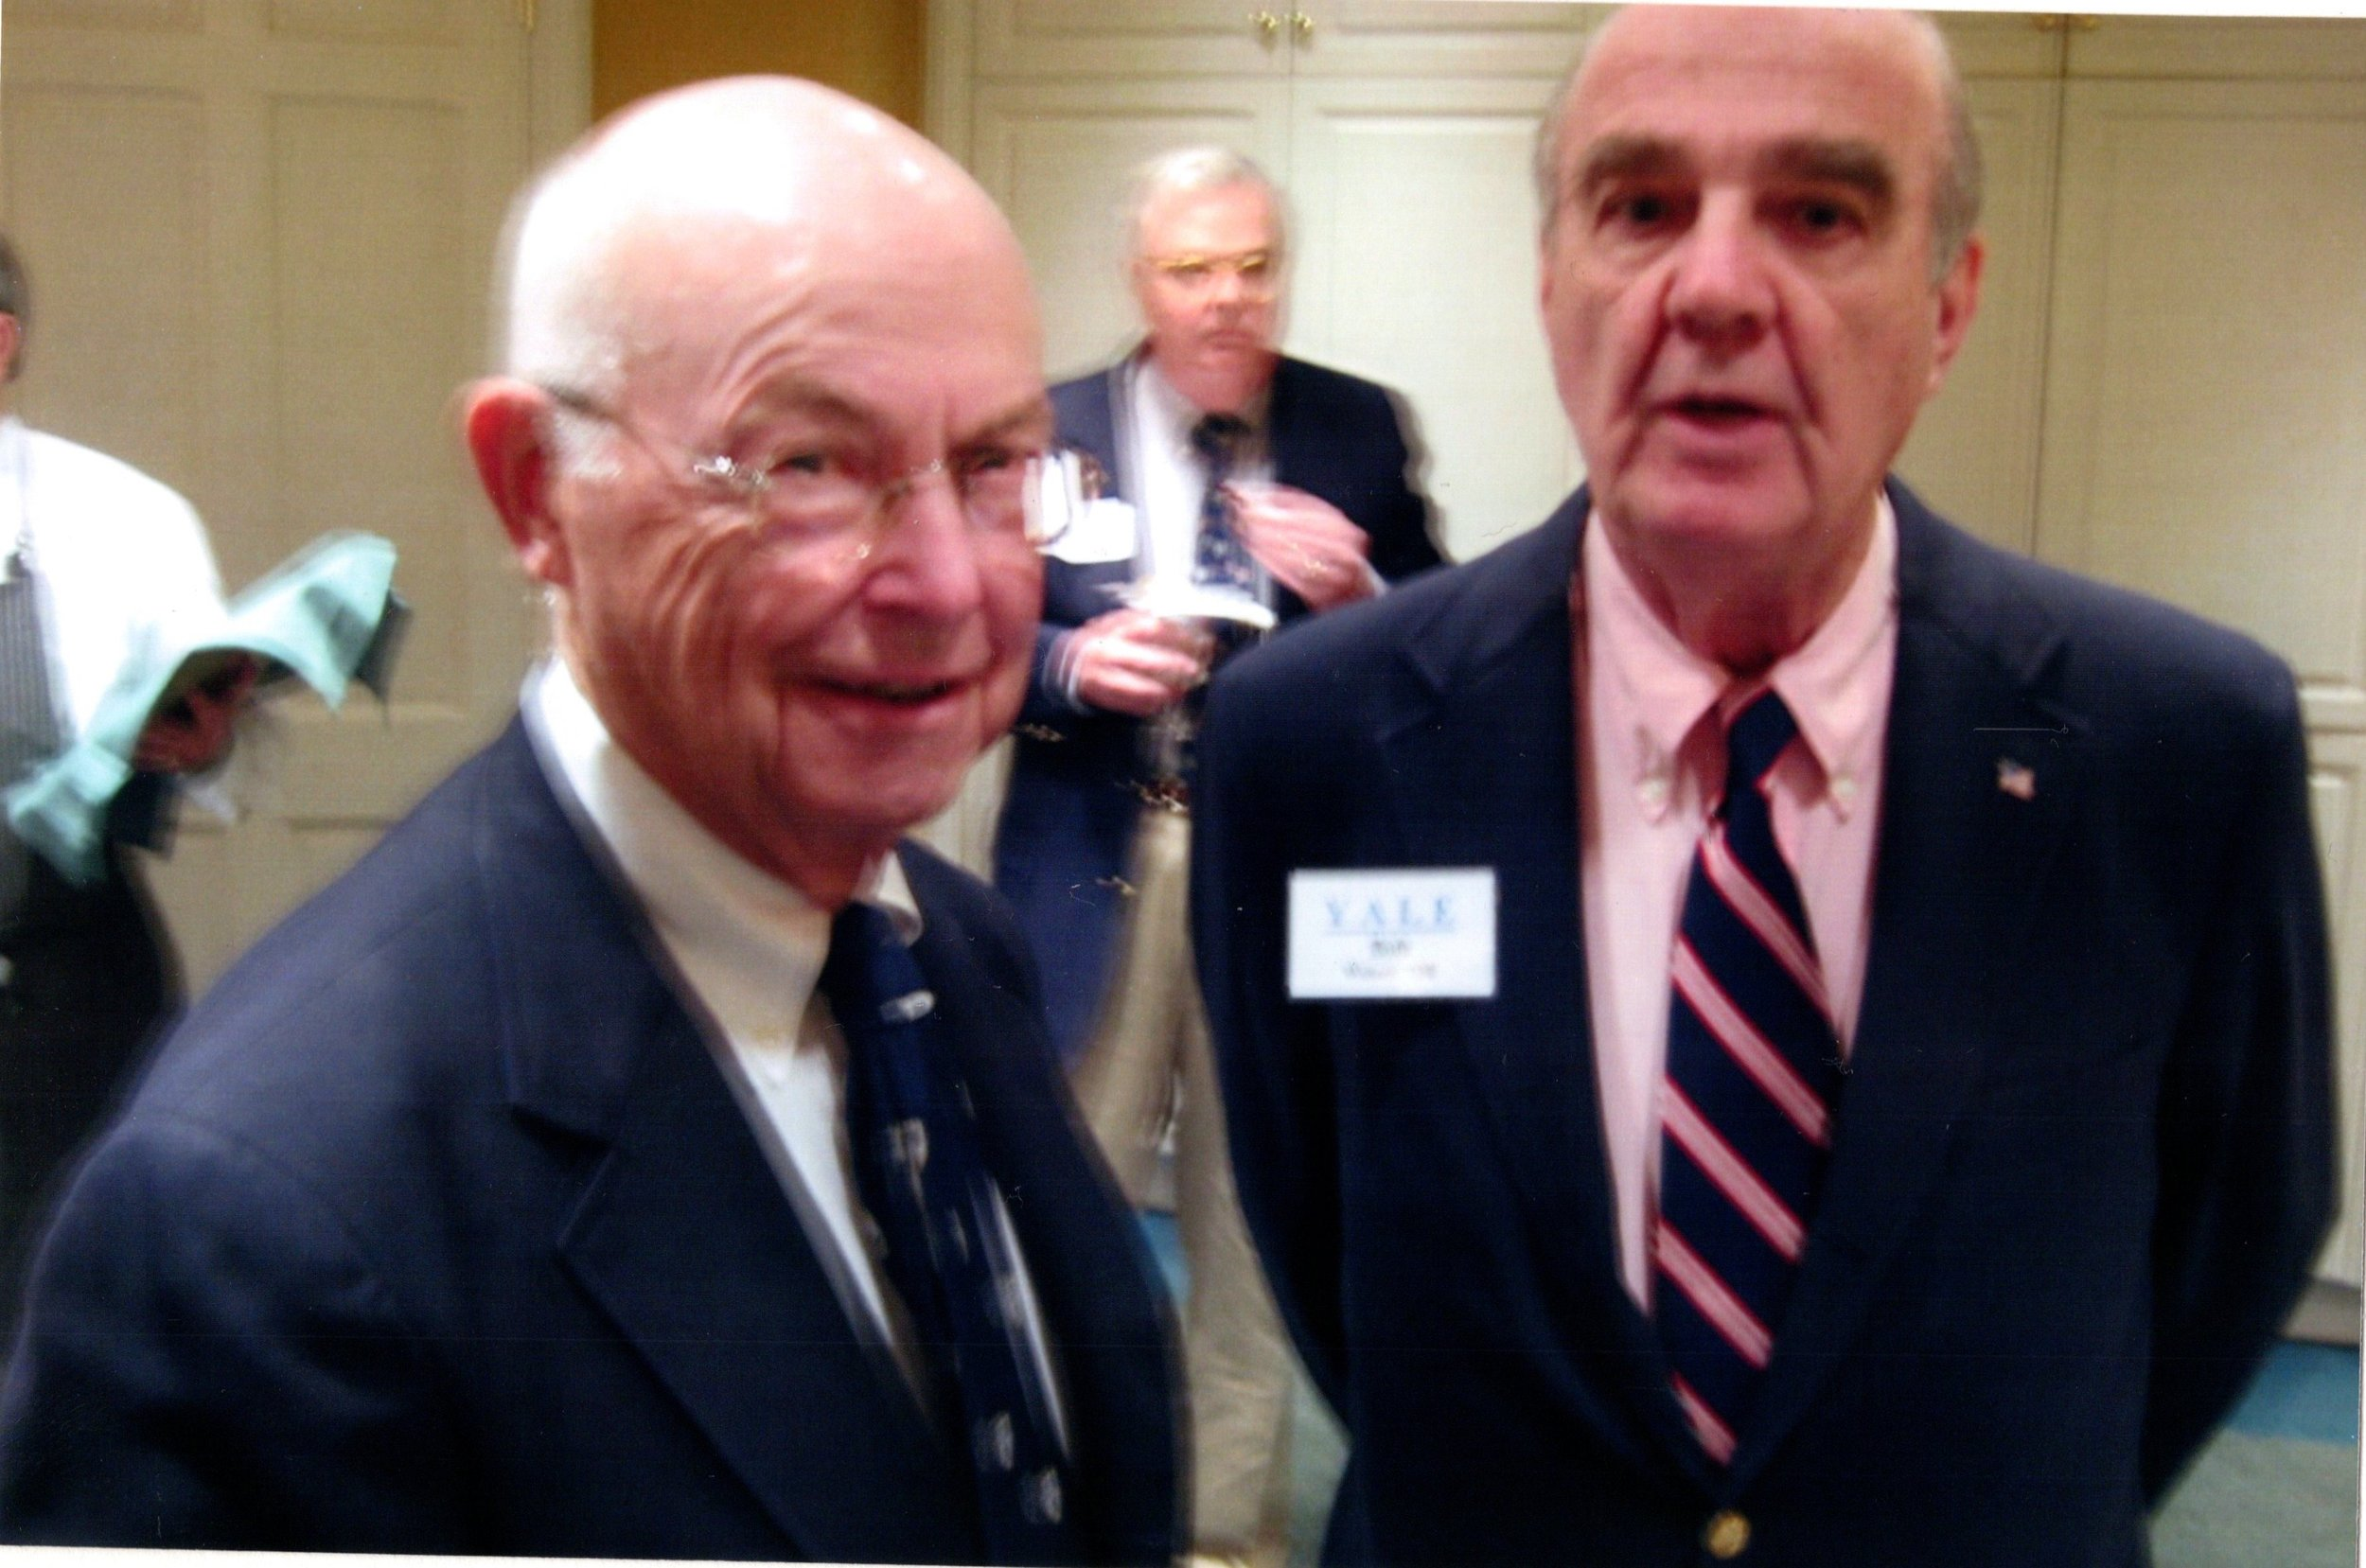 BILL CARPENTER, BOB WENZEL